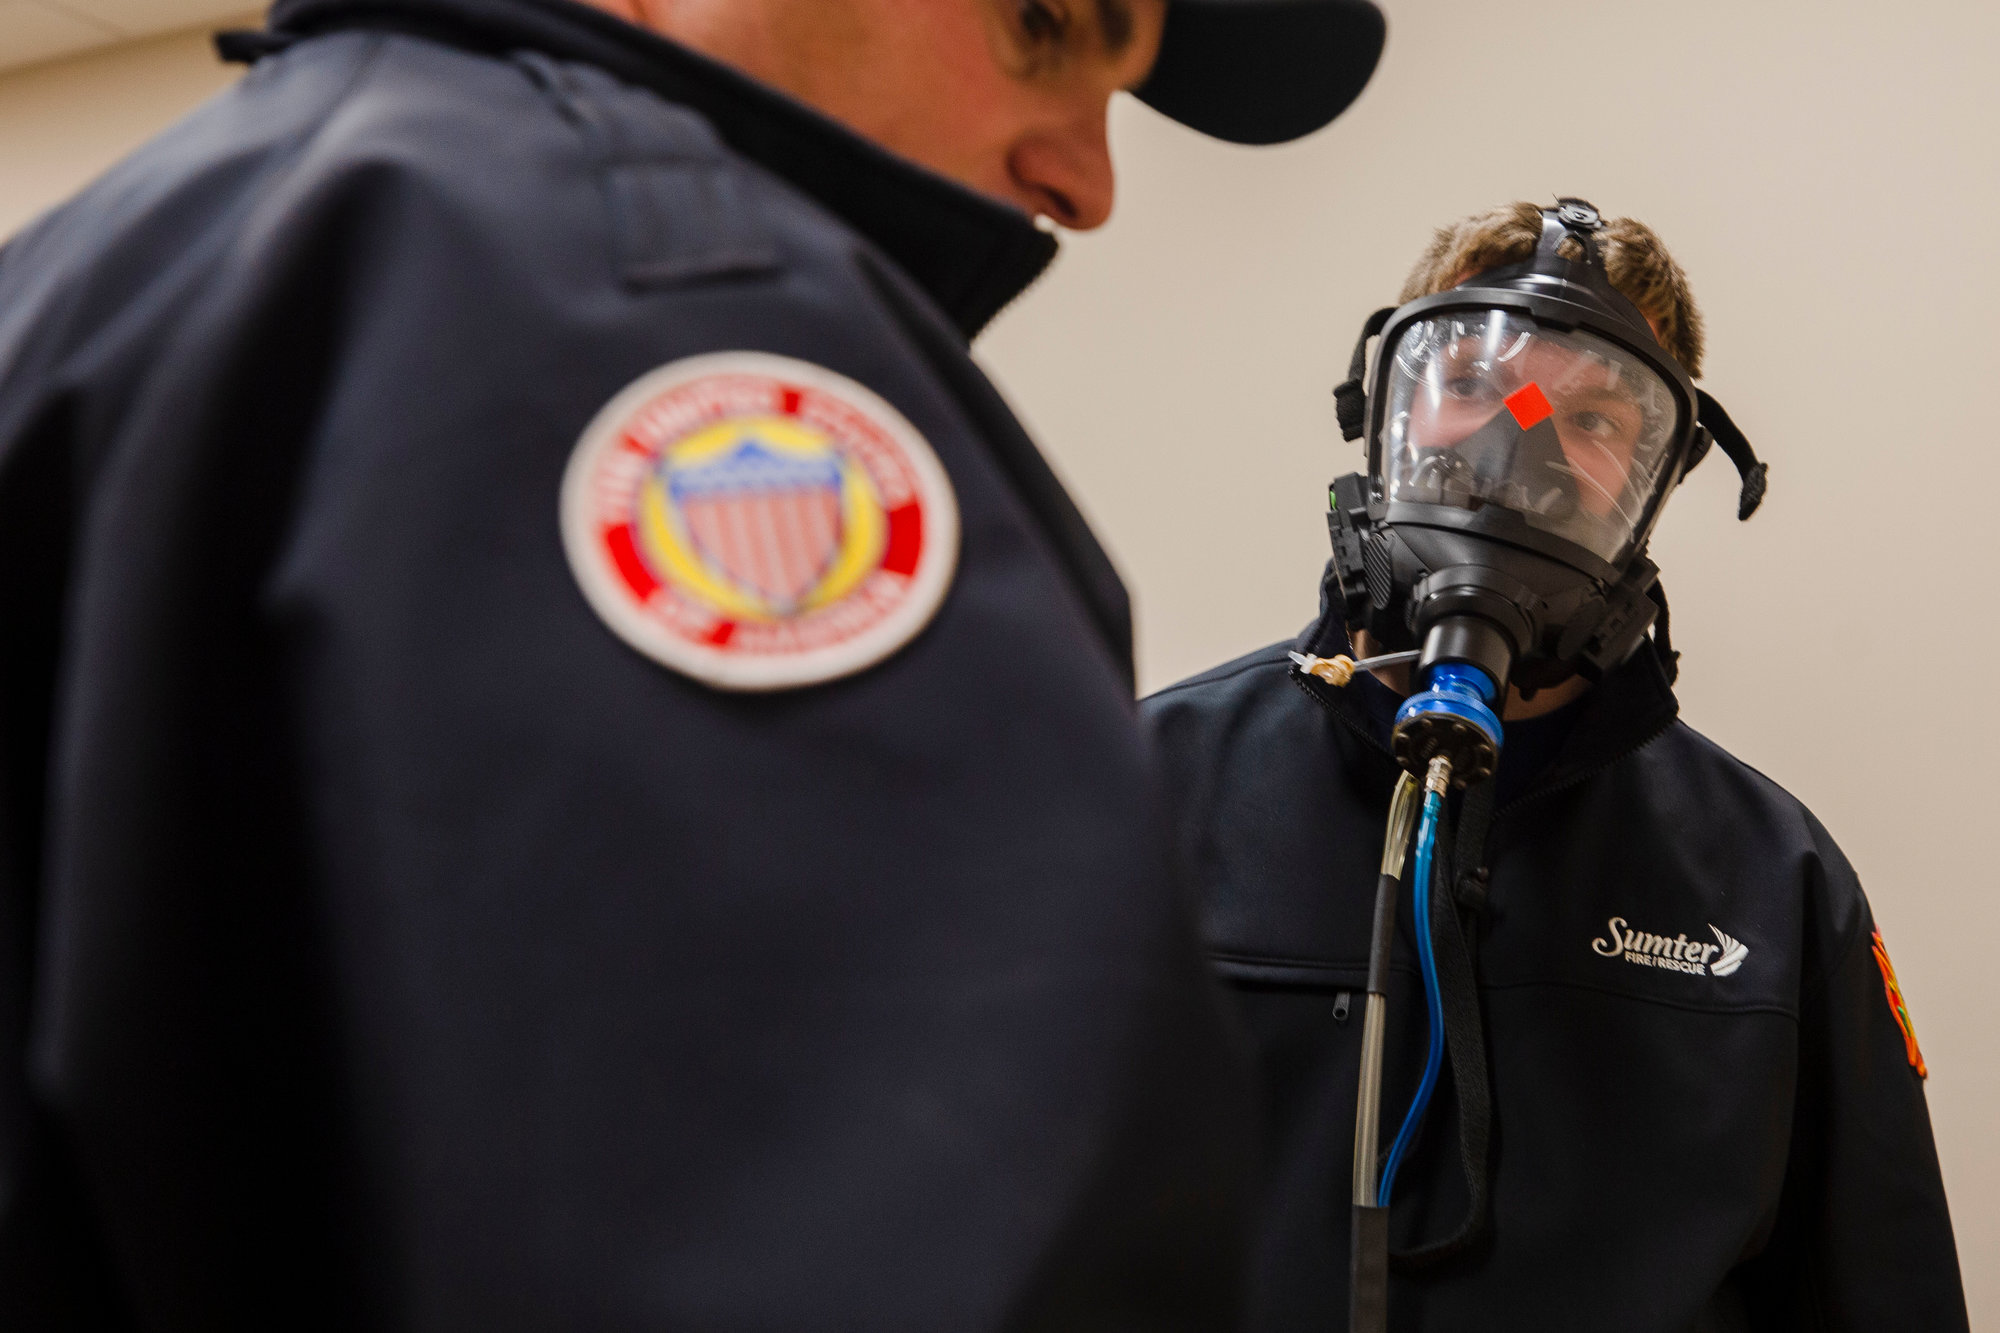 Sumter Fire Department firefighters test out new air packs the department received Tuesday. The packs have newer features, and firefighters training with them said they're easier to use and have an upgraded communication system.